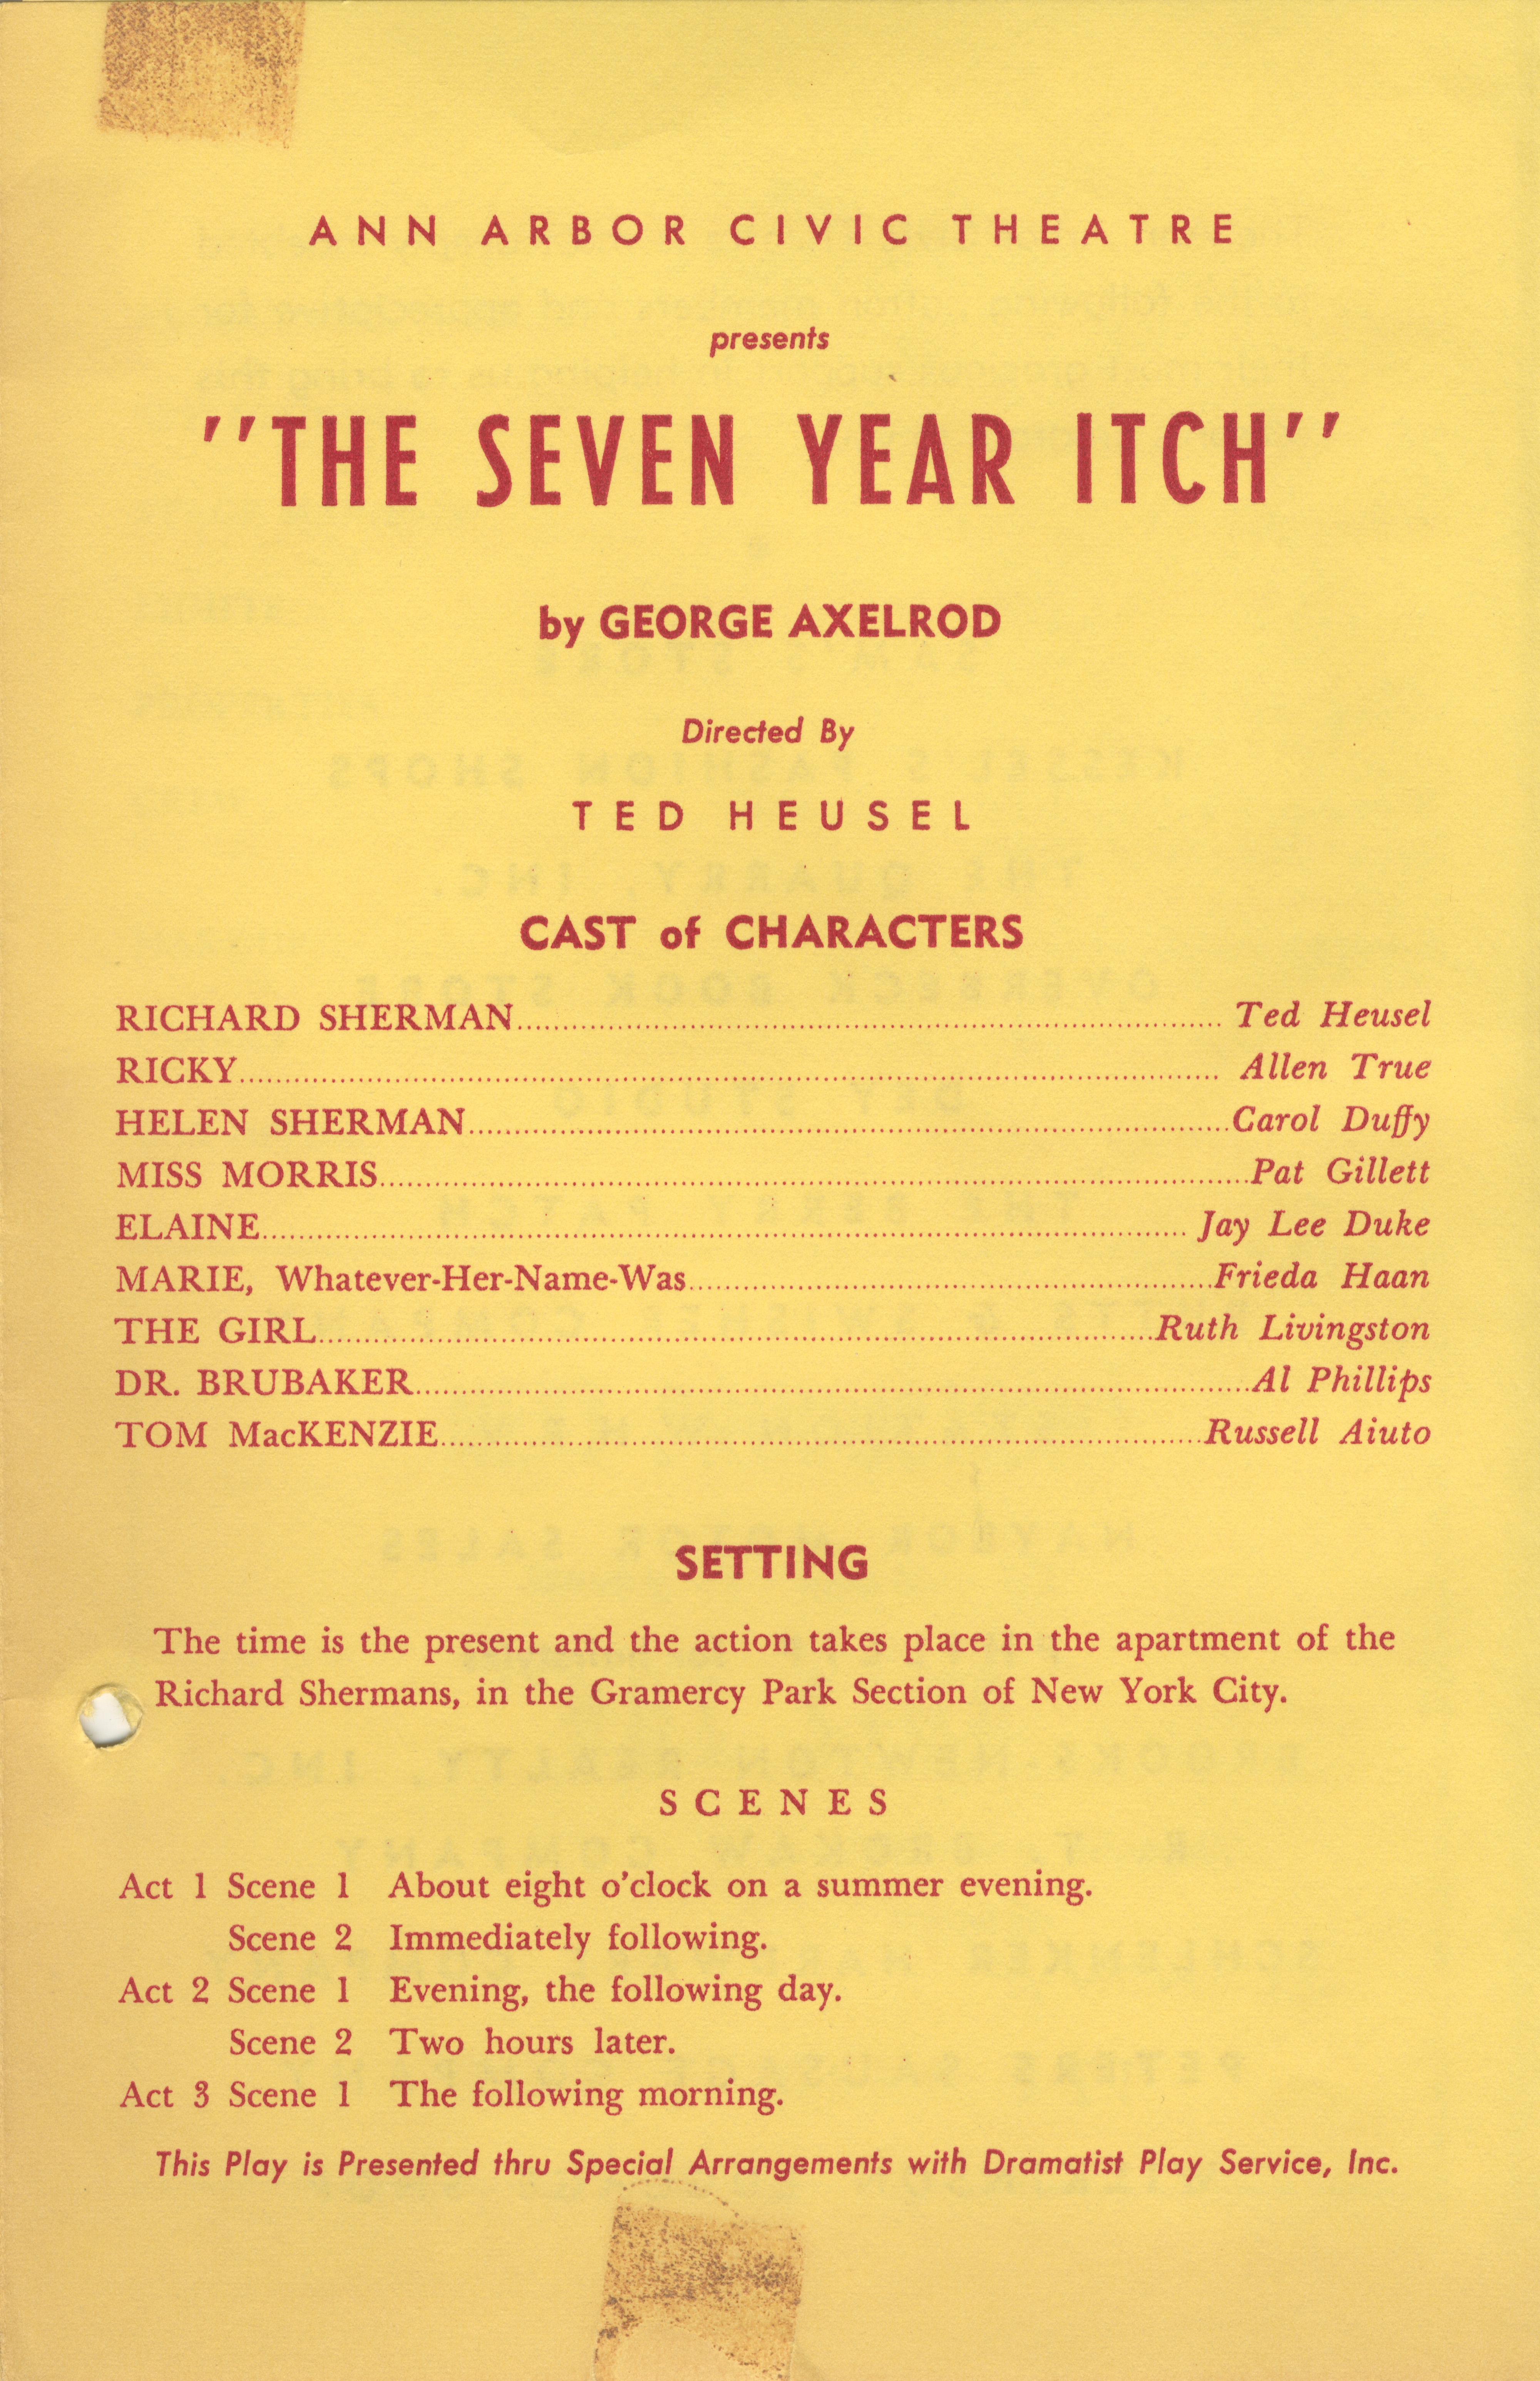 Ann Arbor Civic Theatre Program: Seven Year Itch, January 03, 1957 image